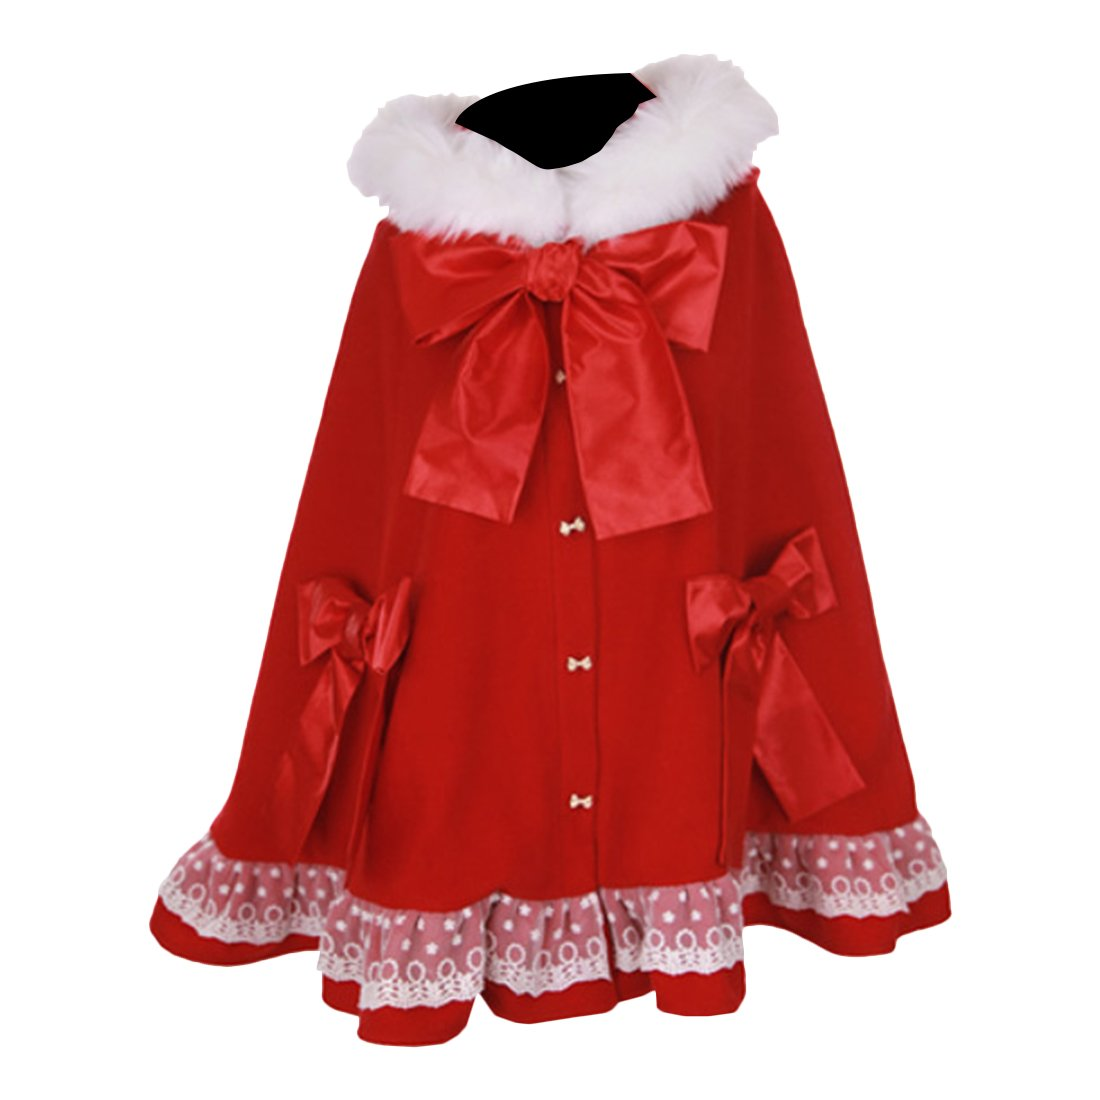 Partiss Womens Sweet Girls Lolita Cute Hooded Cape Coat